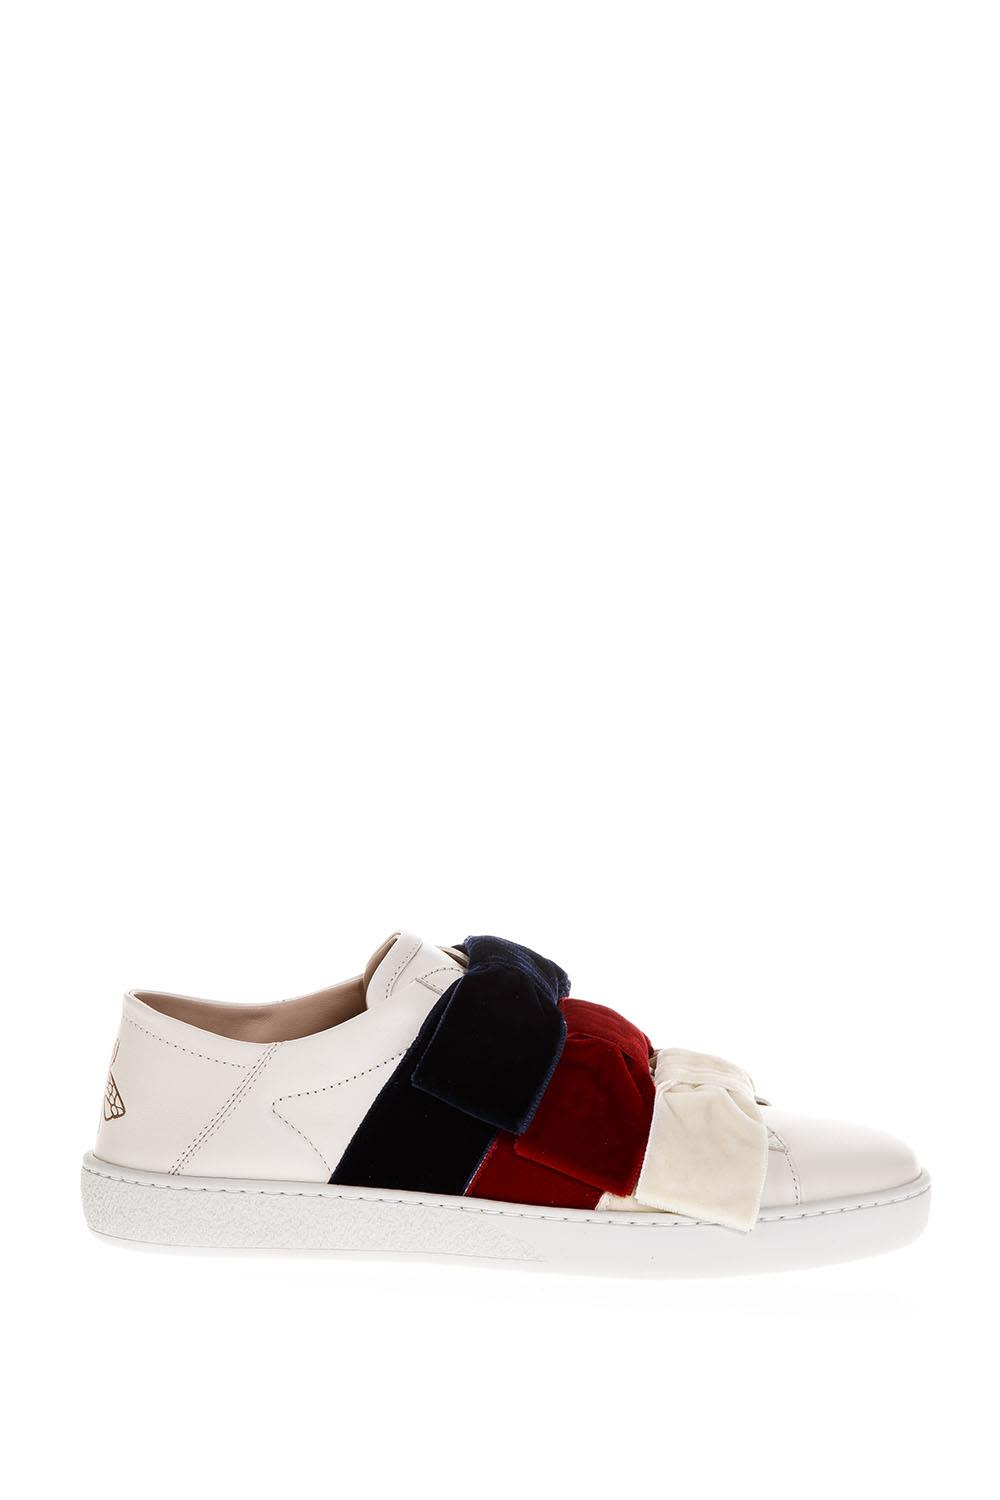 Gucci Ace White Leather Sneakers With Velvet Bow